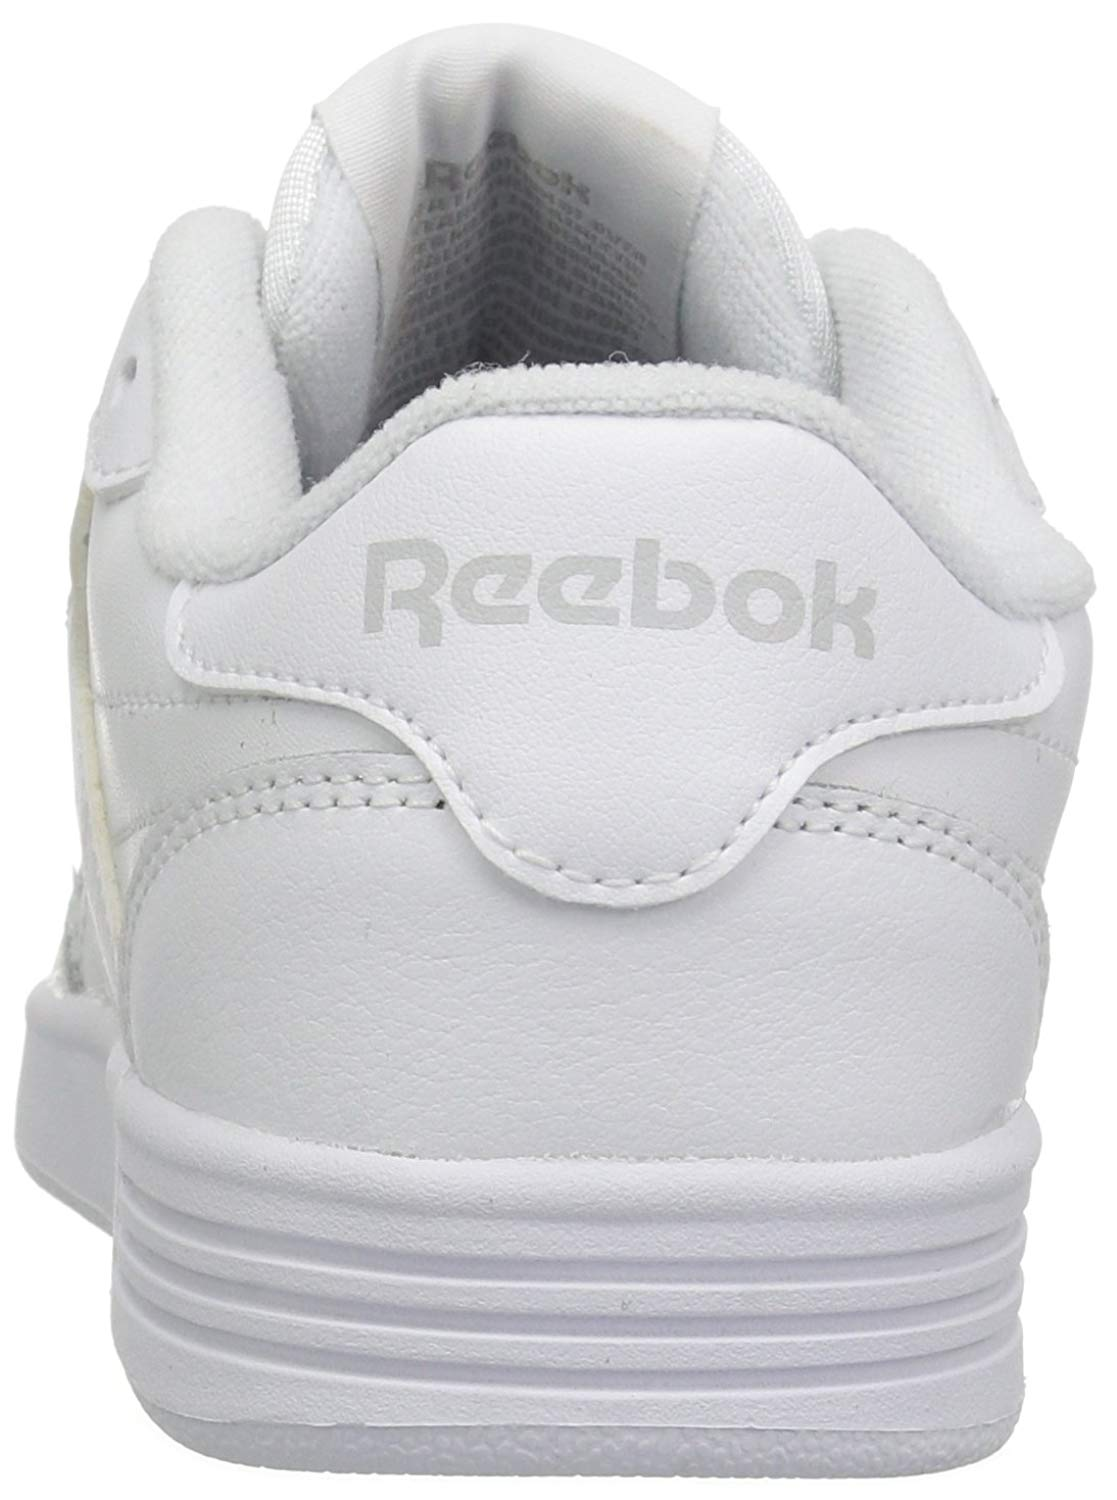 9972b348814d Reebok Womens Club Memt Low Top Lace Up Fashion Sneakers